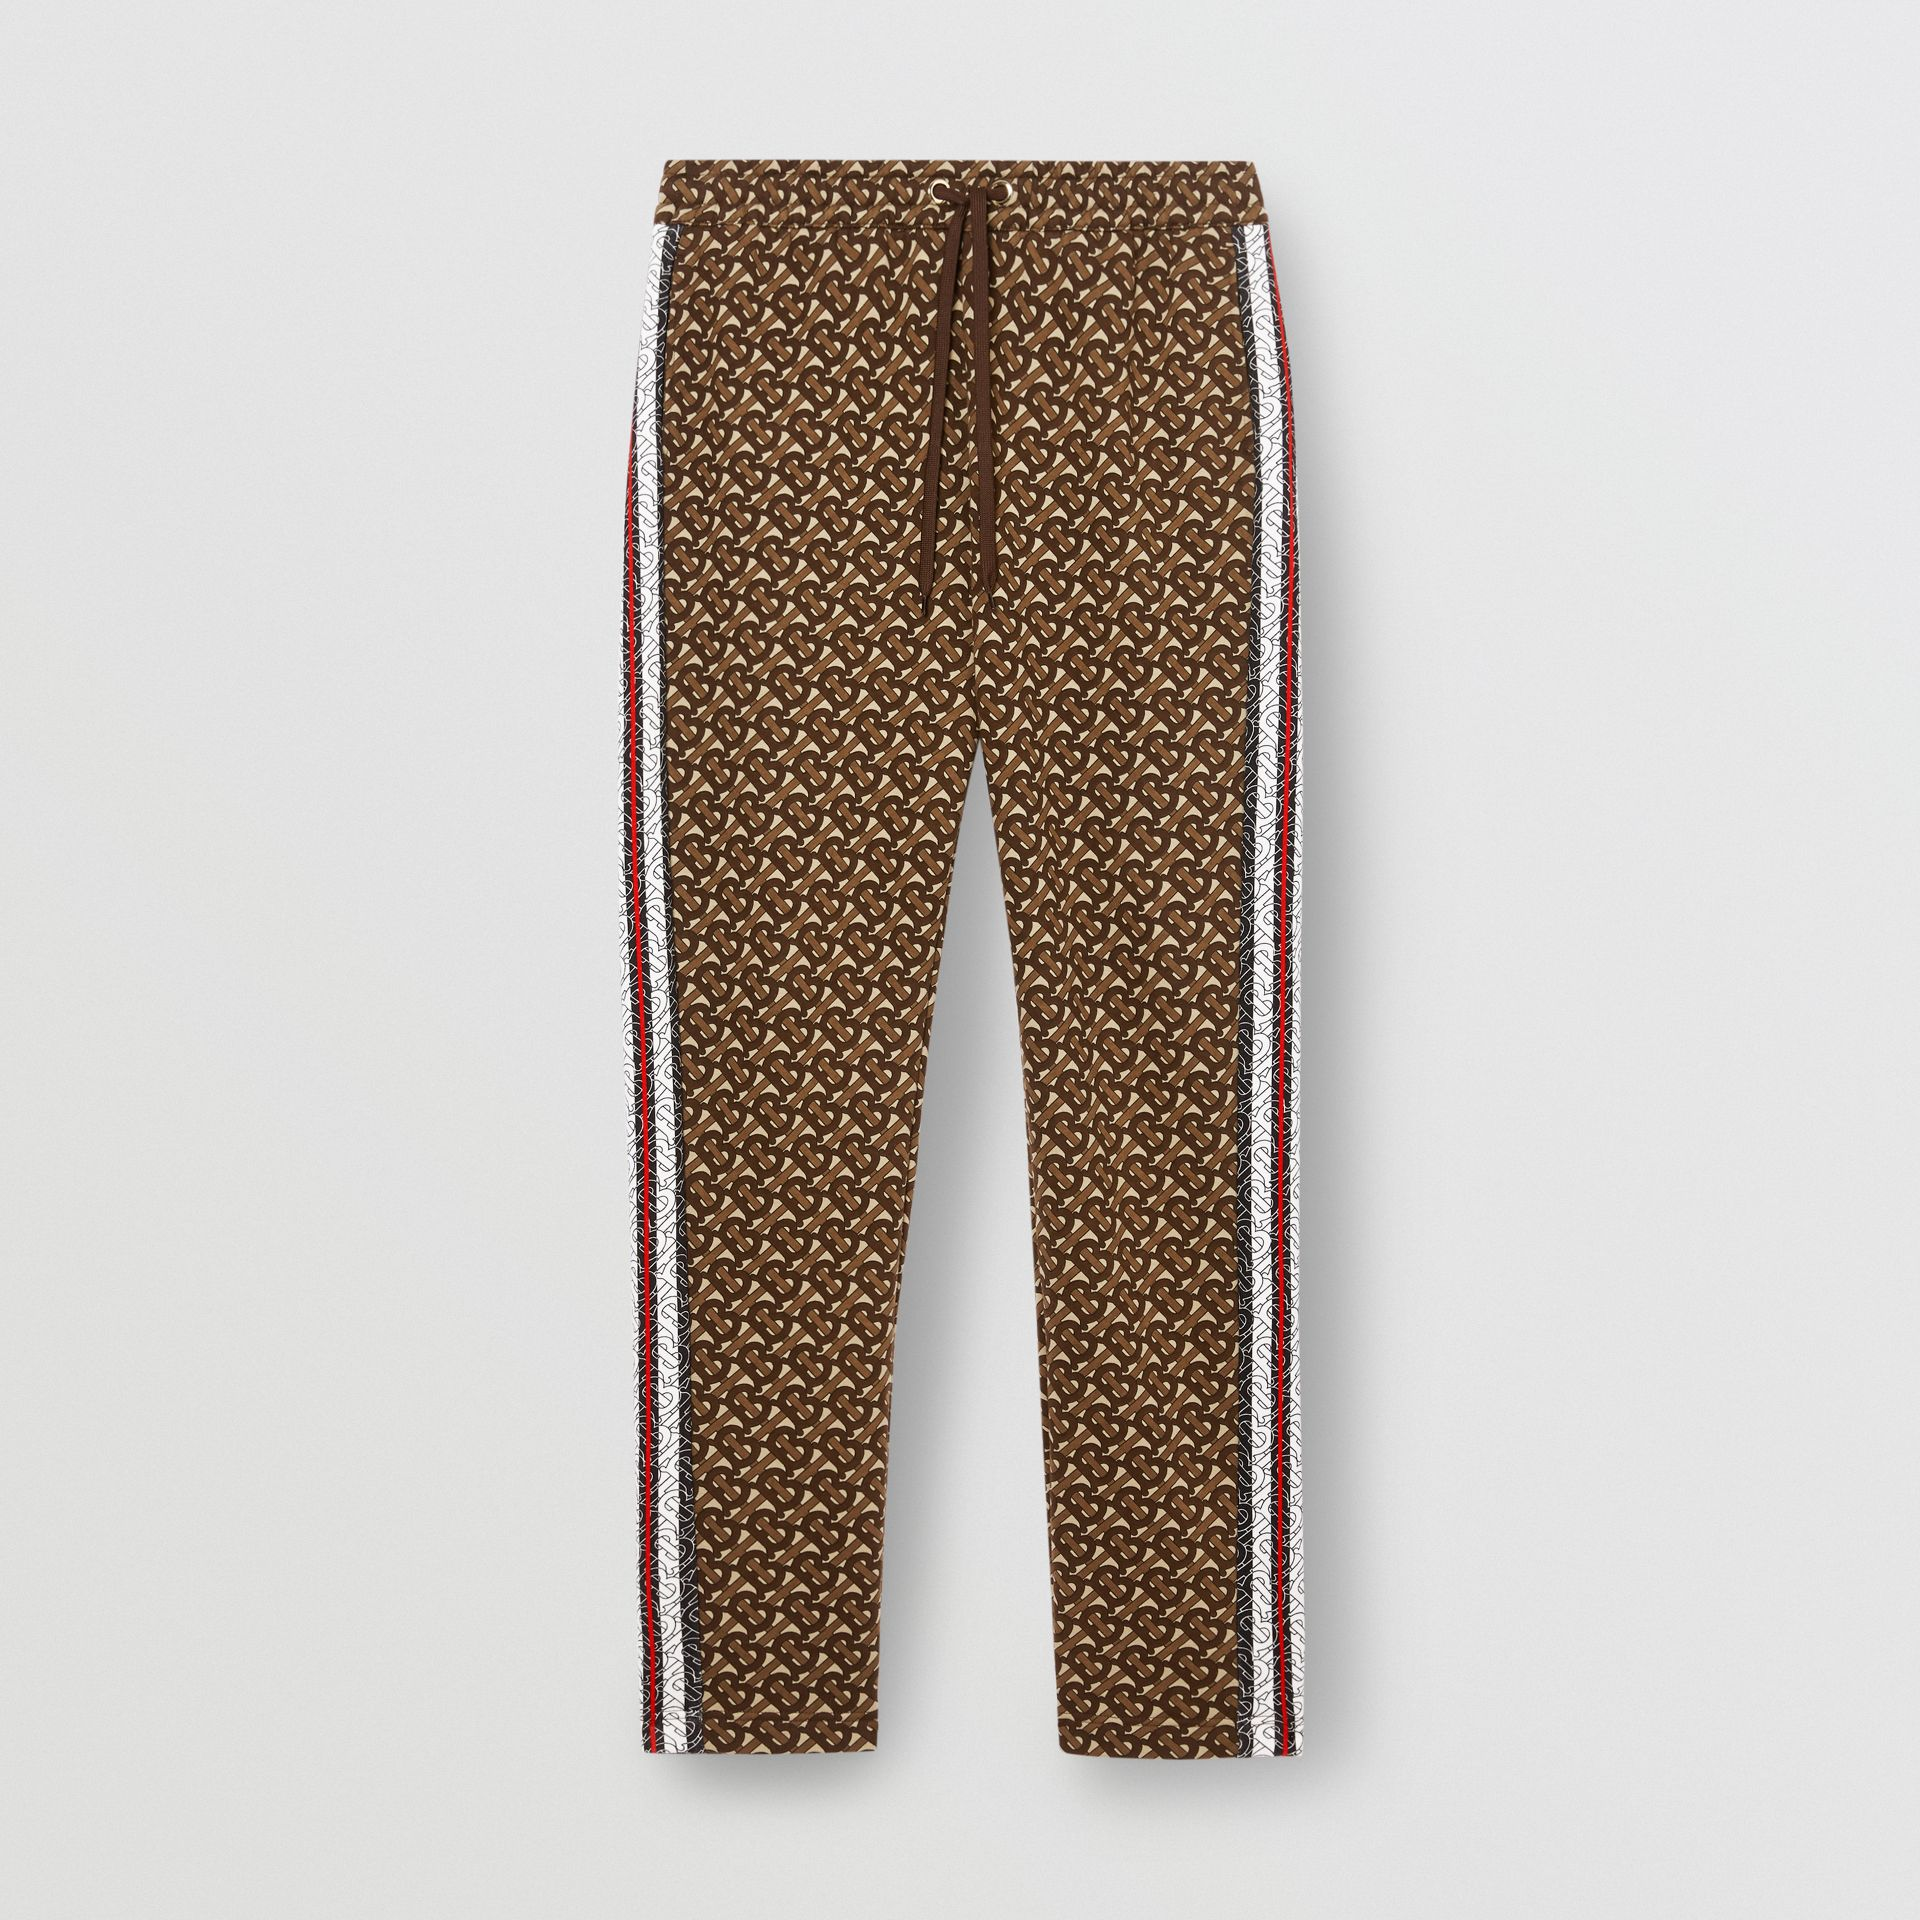 Pantalon de survêtement en coton rayé Monogram (Brun Bride) - Homme | Burberry - photo de la galerie 3